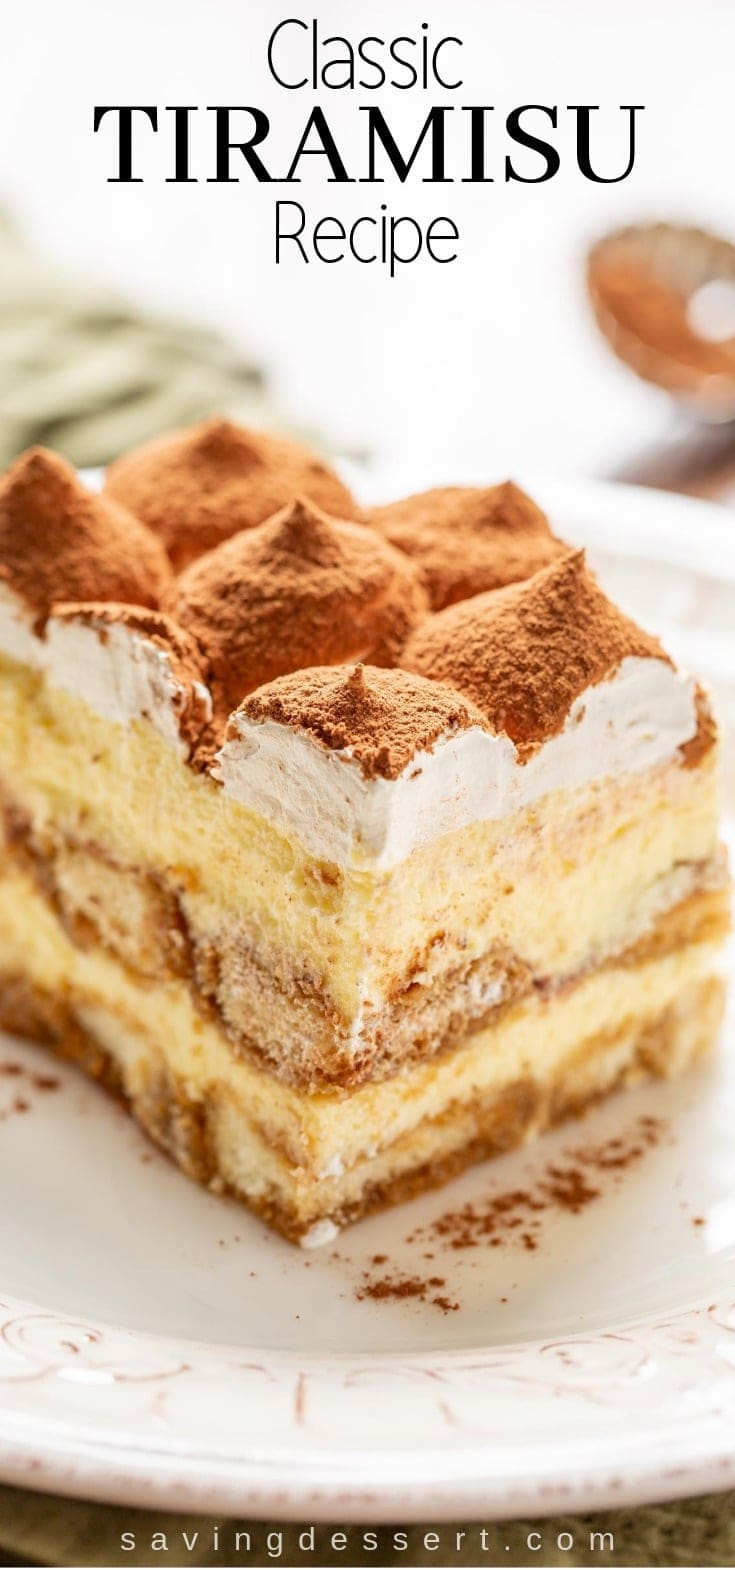 You don't have to be Italian to enjoy this coffee-flavored Tiramisu with a little something extra from the Kahlua liqueur. #tiramisu #makeahead #dessert #Italiandessert #Tiramisurecipe